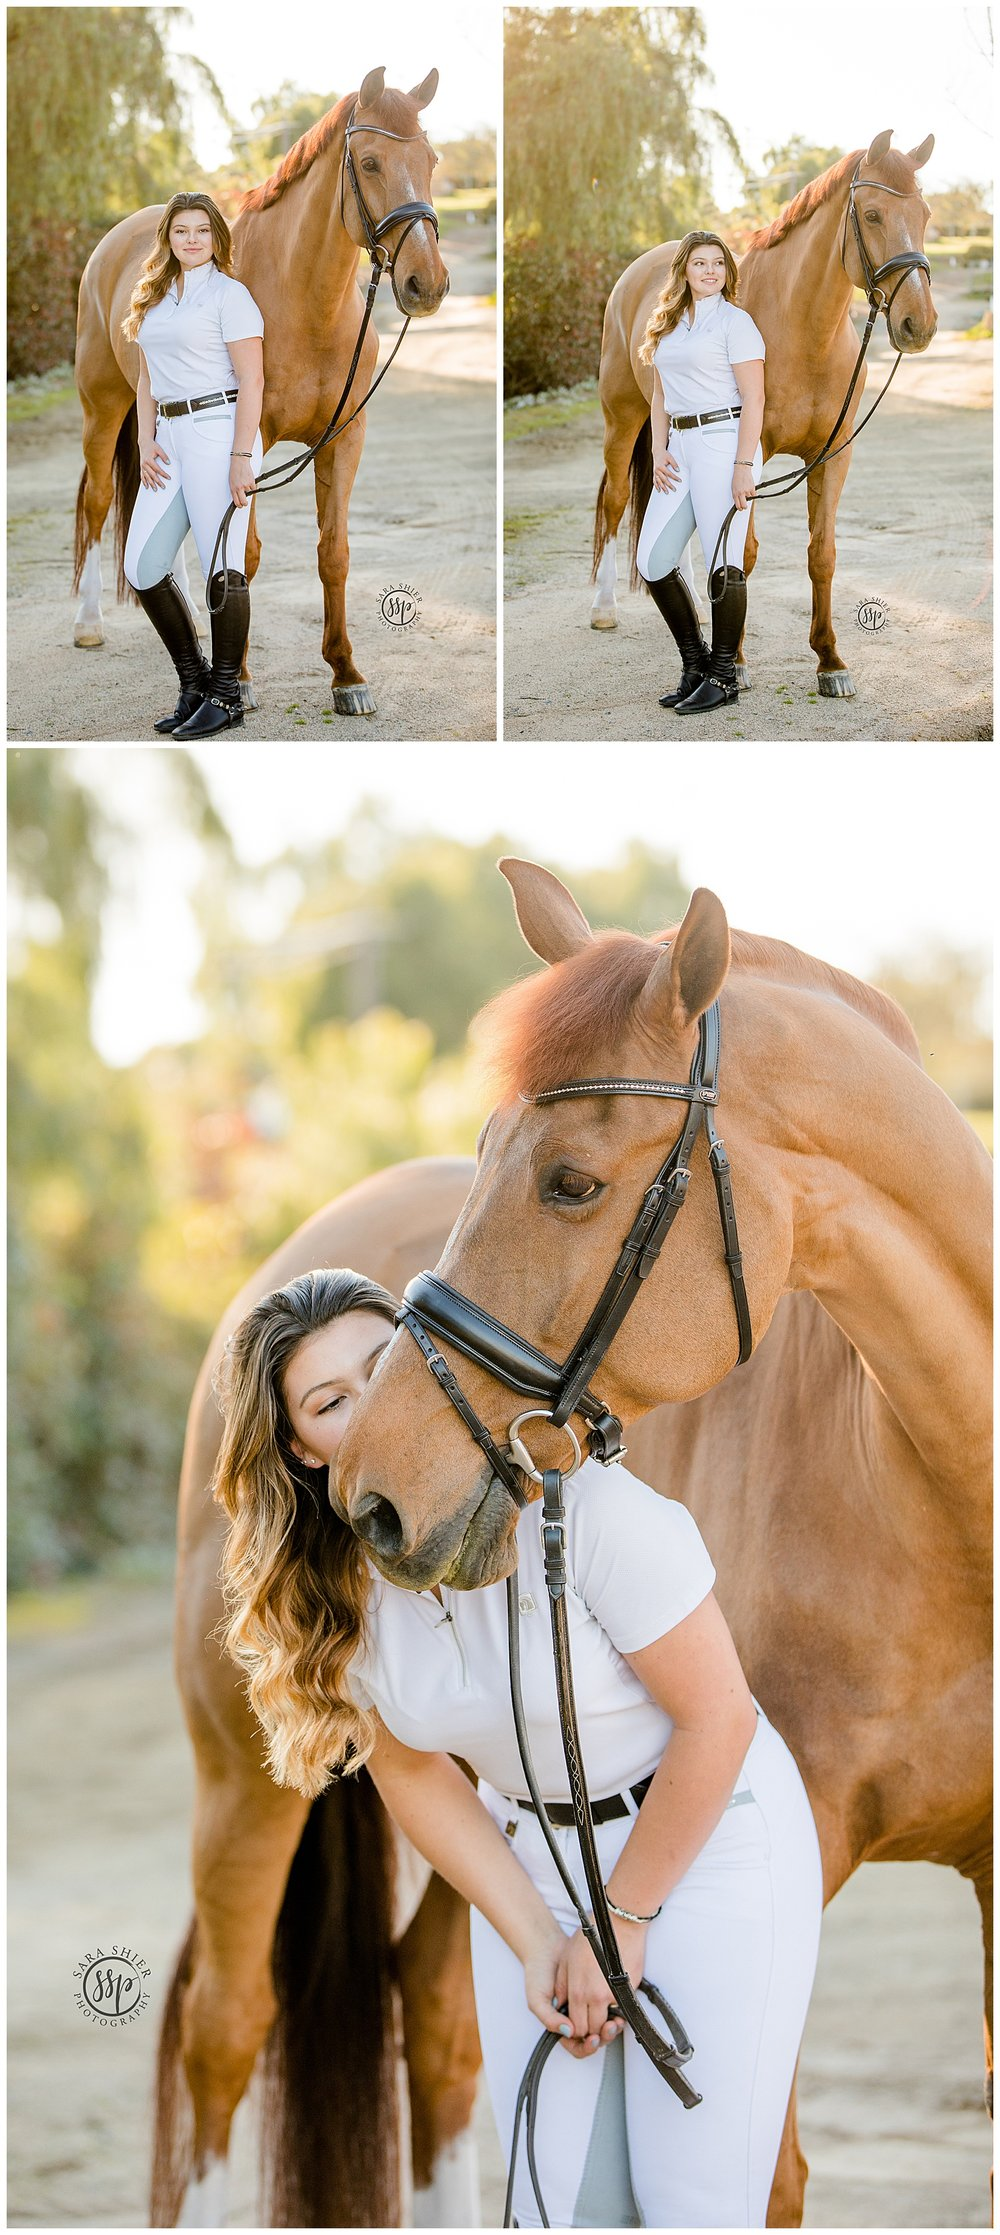 Black Background Horse Rider Equine Photographer Southern California Sara Shier Photography SoCal Equestrian Cowgirl_0428.jpg